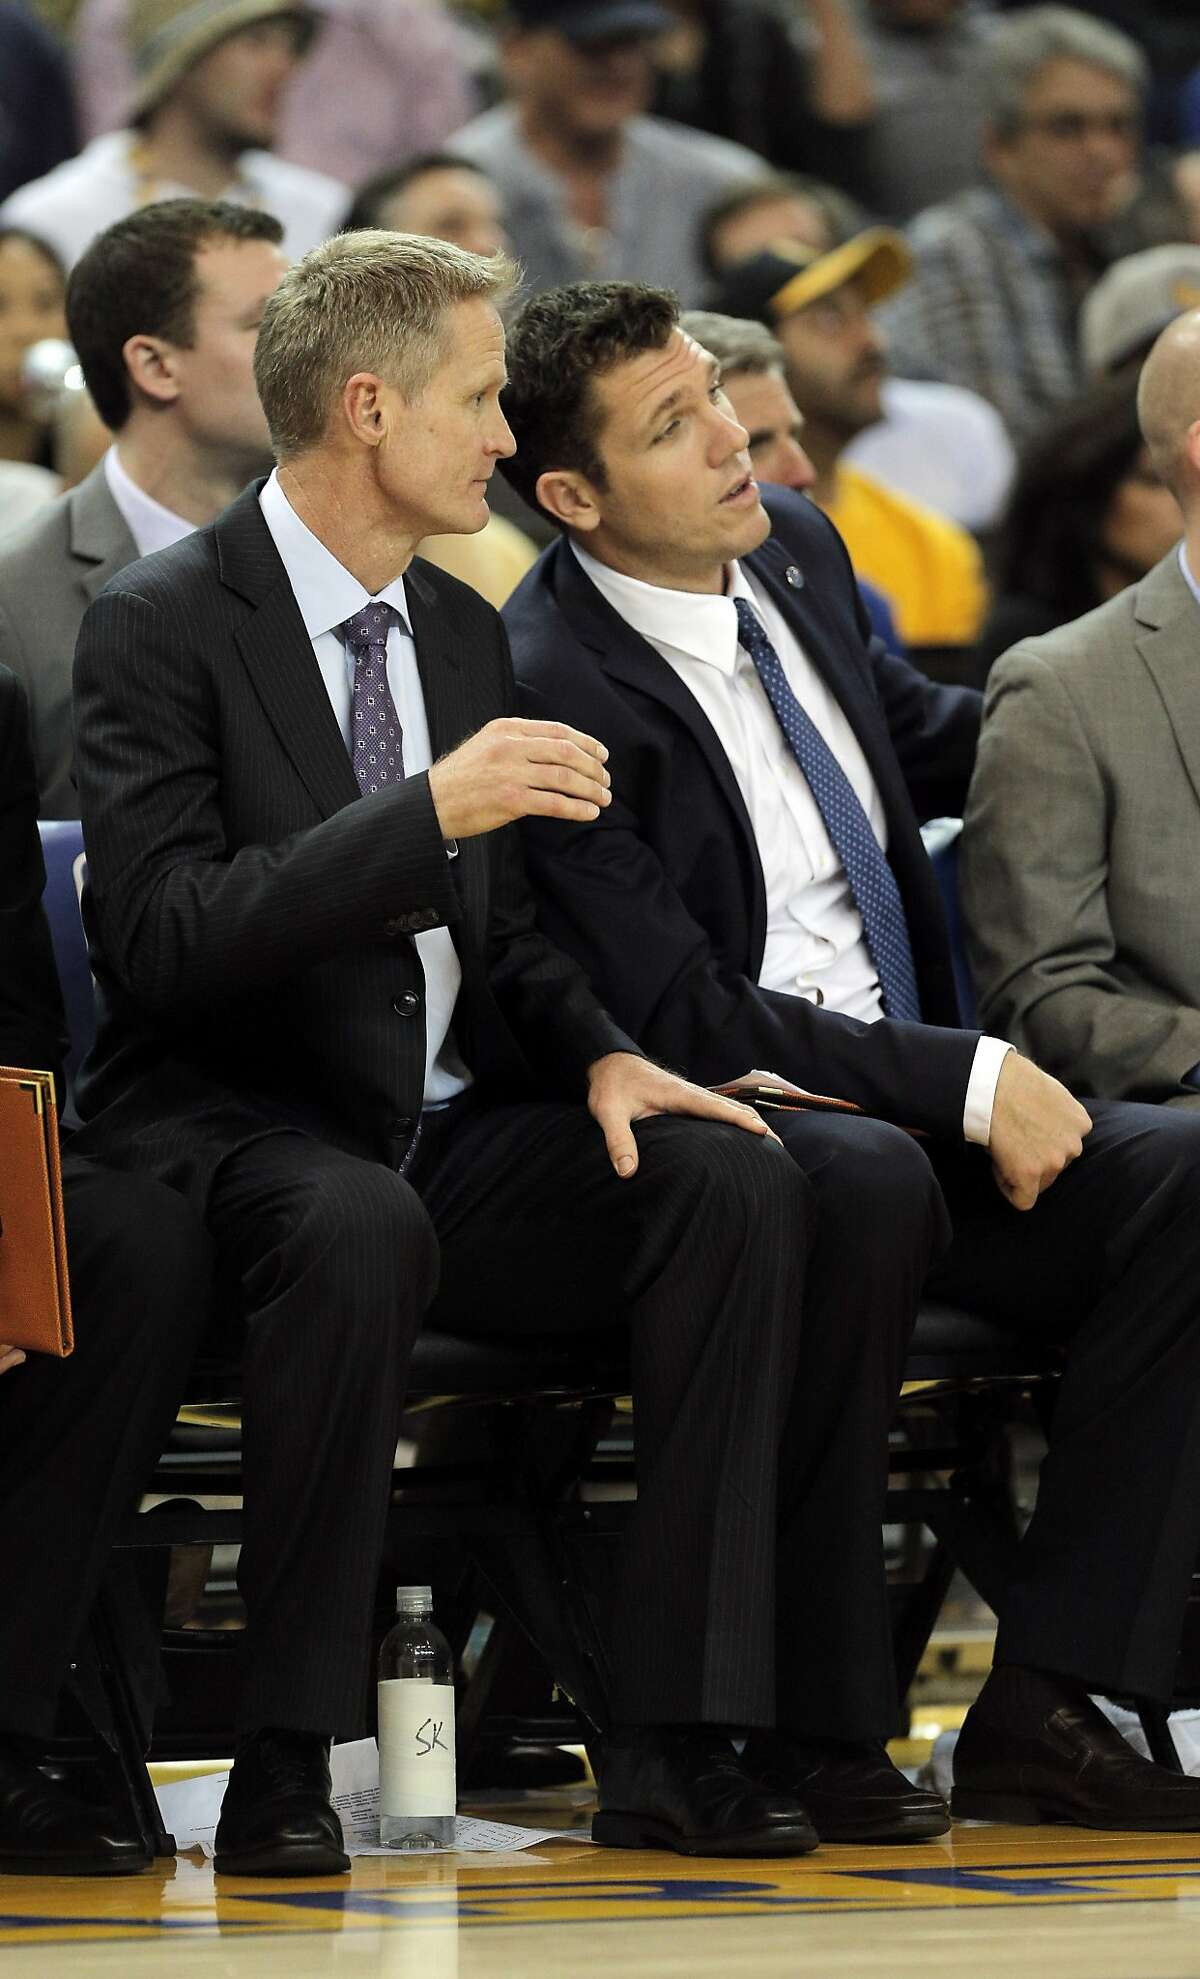 Head coach Steve Kerr, left, chats with assistant coach Luke Walton, right, during the first half of the game between the Golden State Warriors and the Houston Rockets at Oracle Arena in Oakland, Calif., on Tuesday, February 9, 2016.